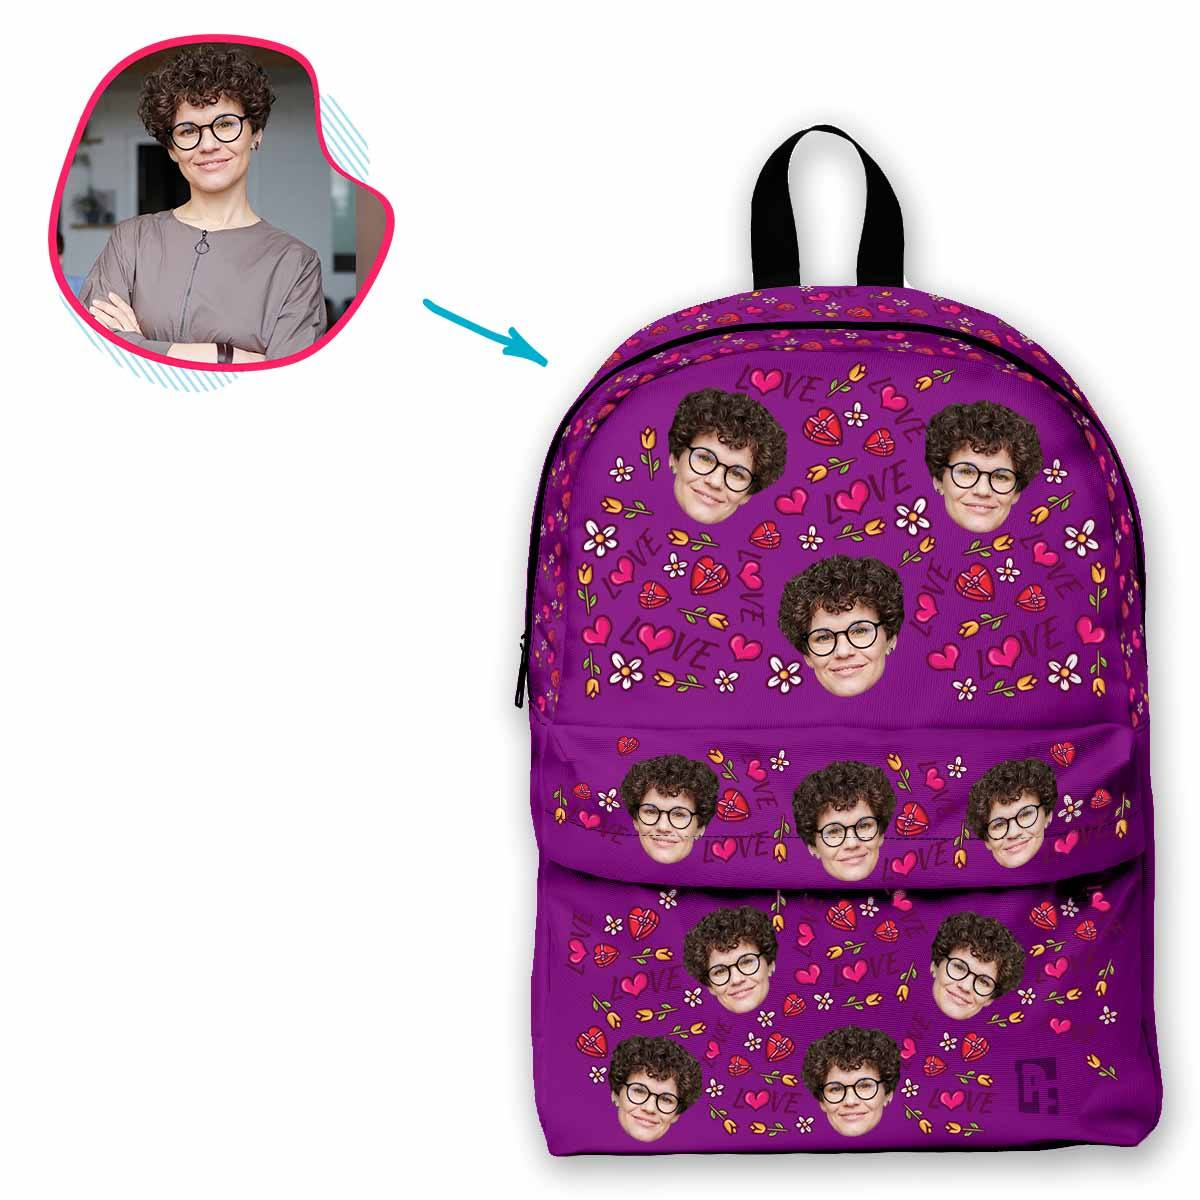 purple Hearts and Flowers classic backpack personalized with photo of face printed on it